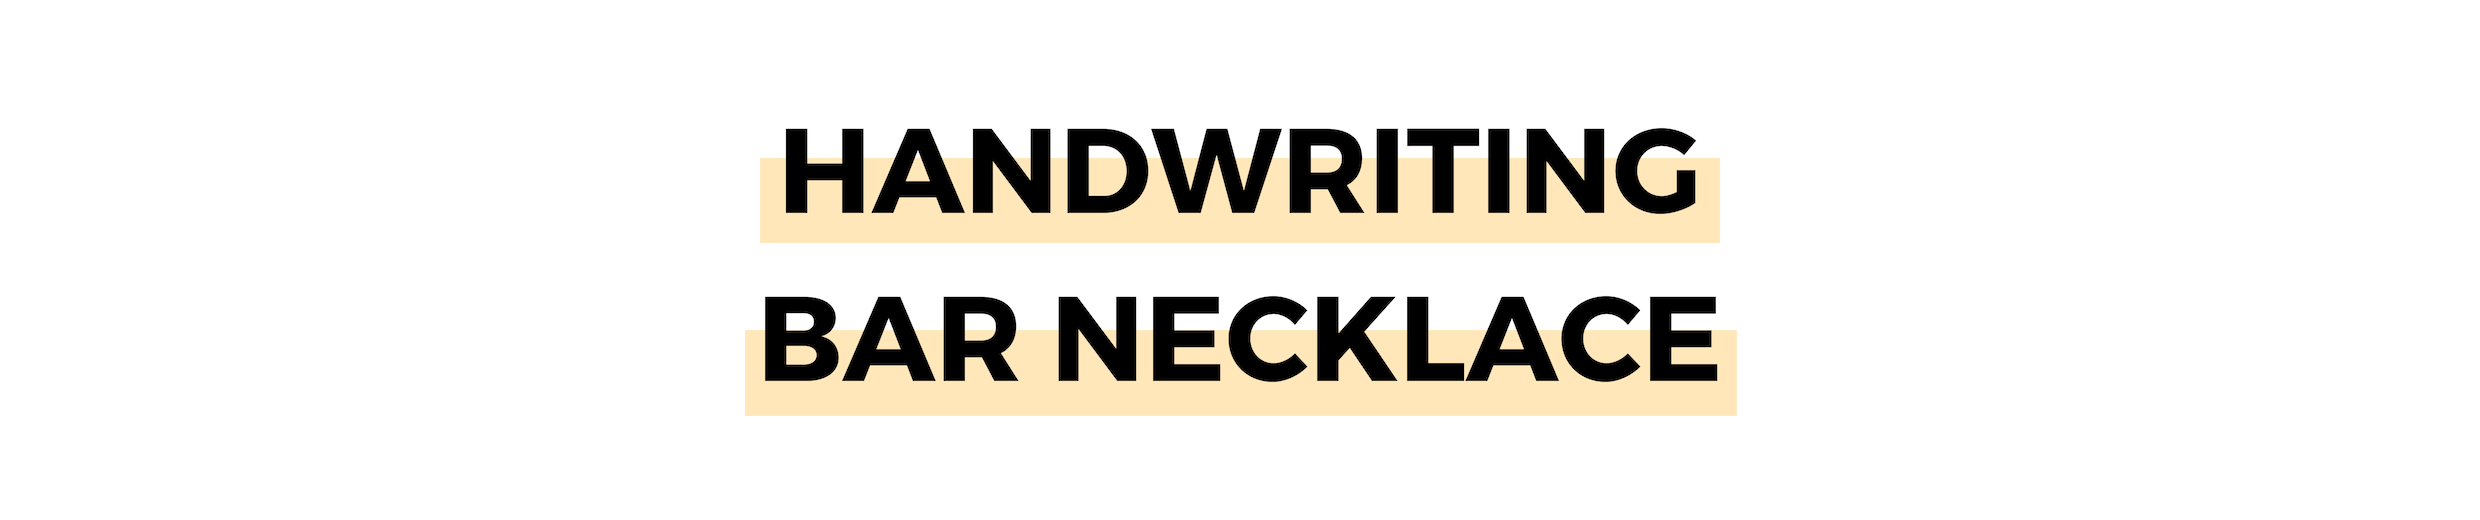 HANDWRITING BAR NECKLACE.png